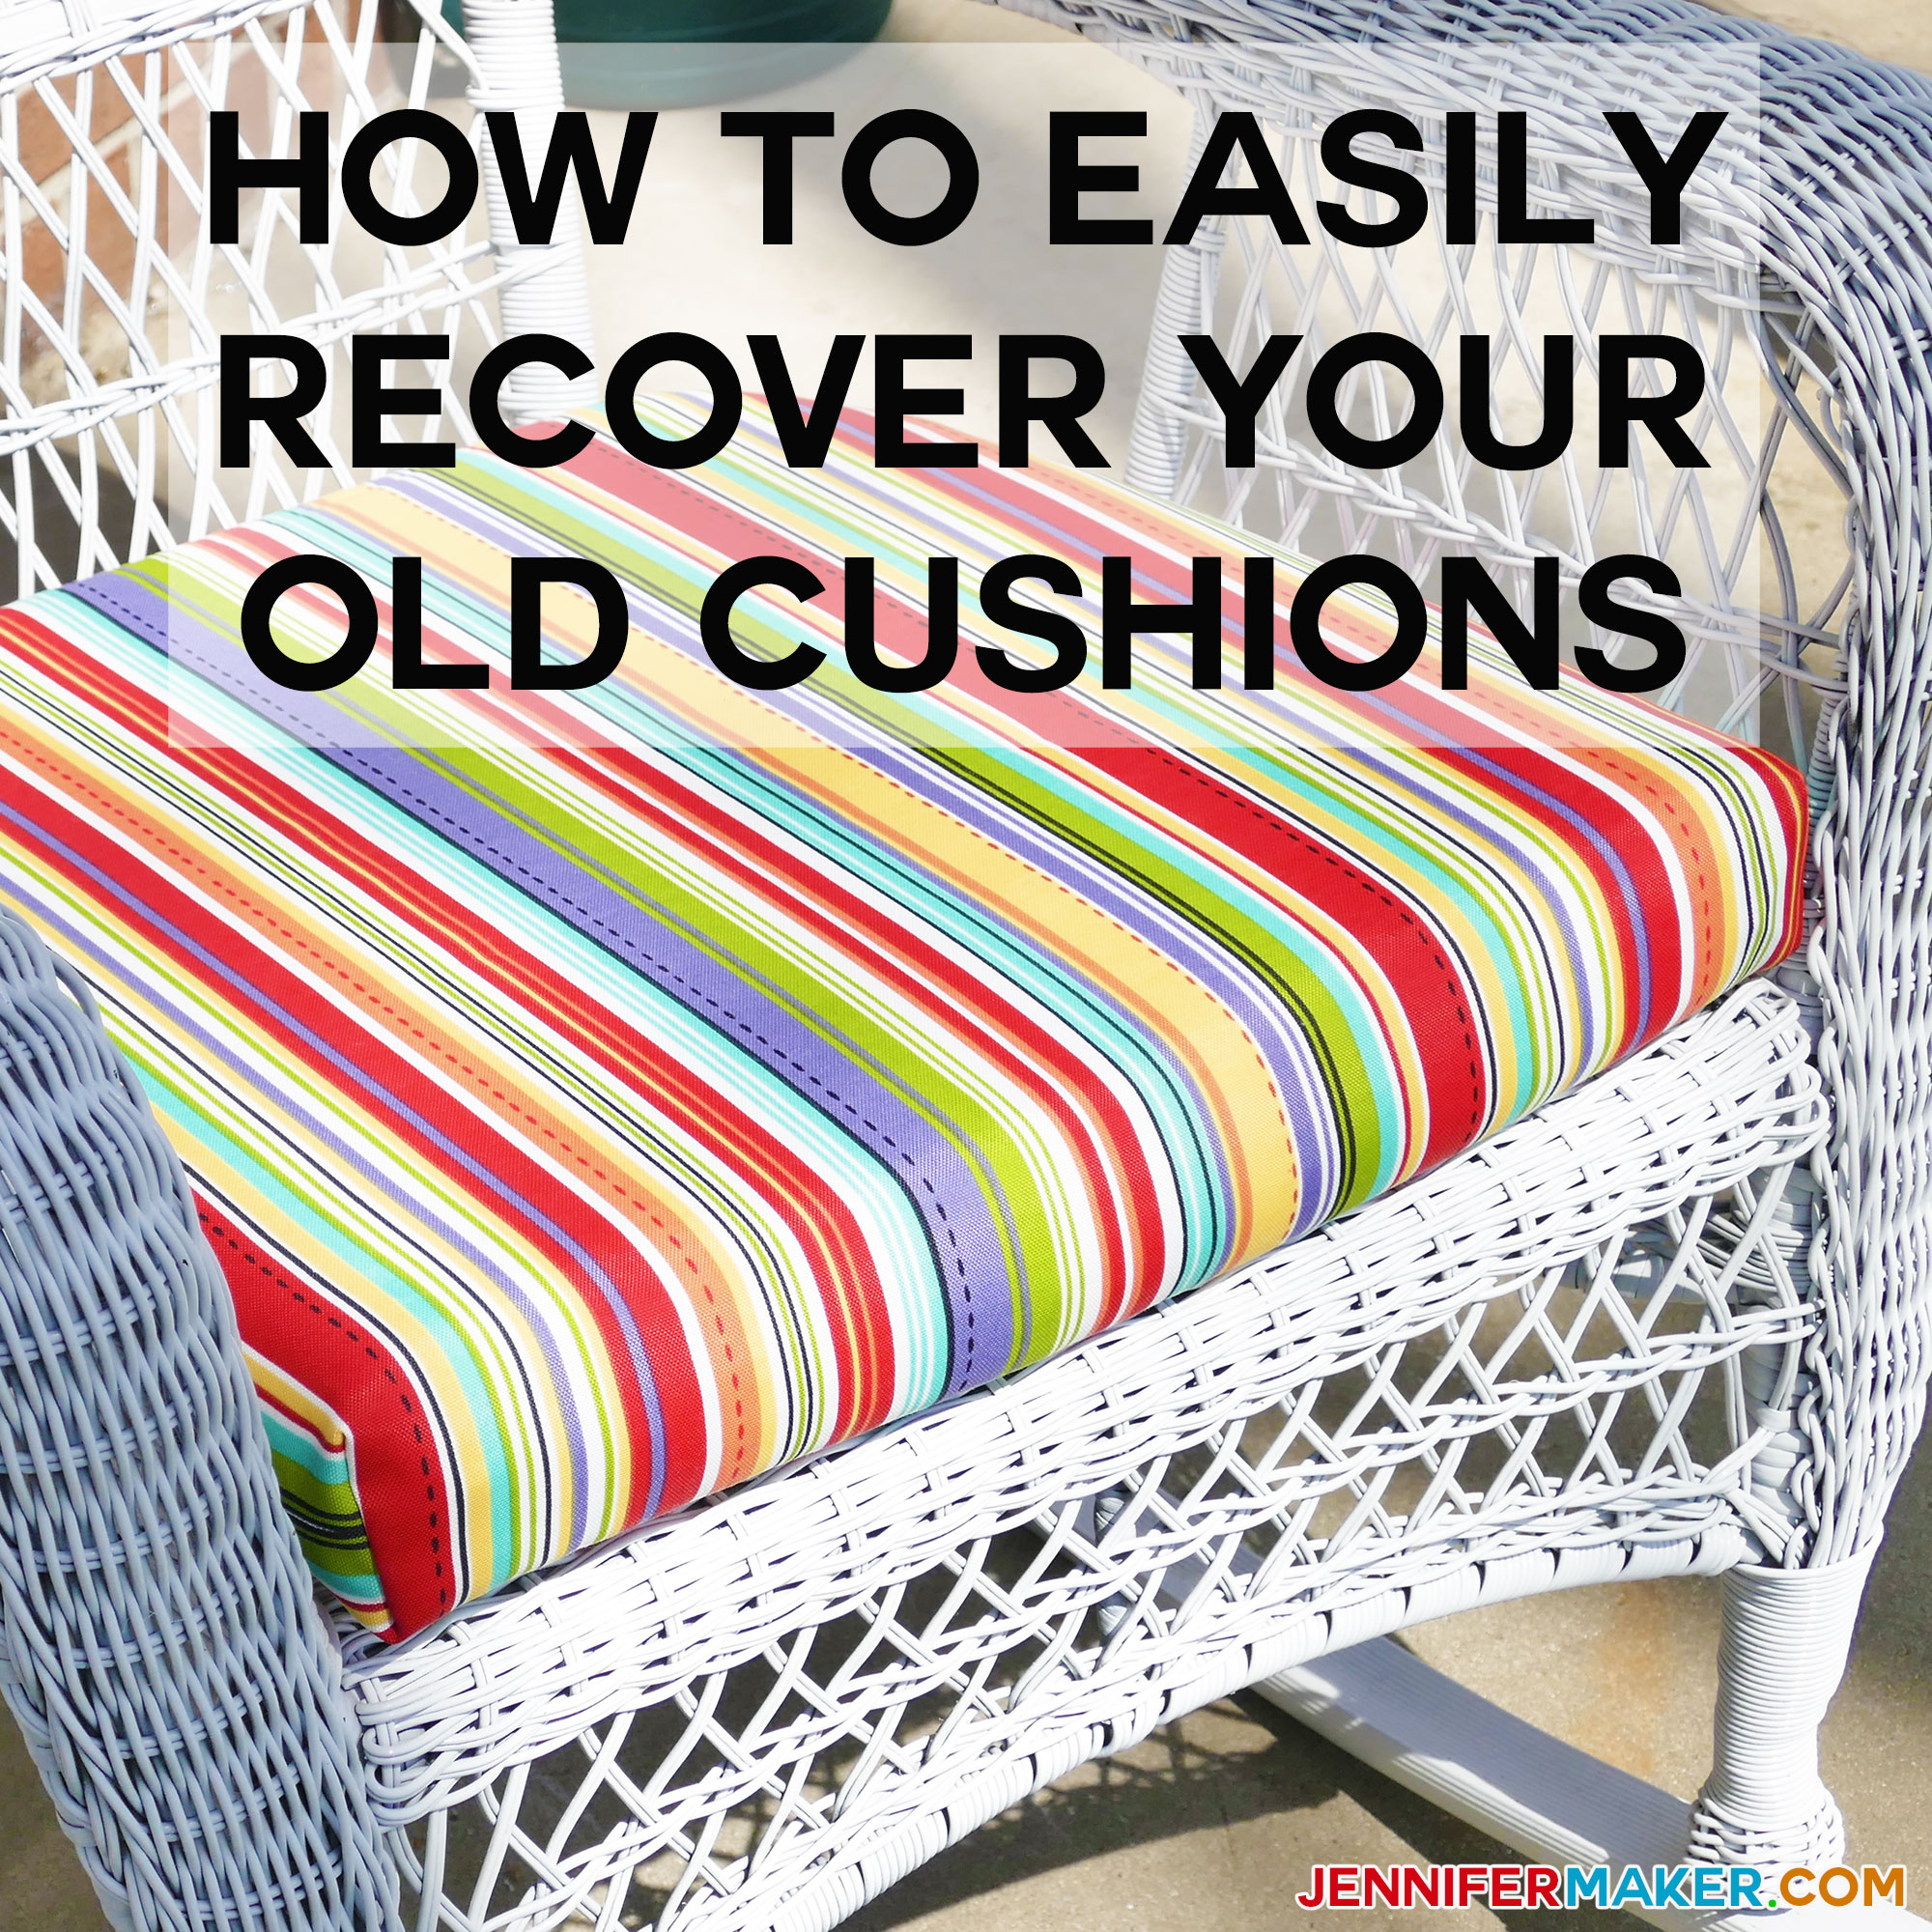 How To Recover Your Old Outdoor Cushions Easily Quickly Jennifermaker